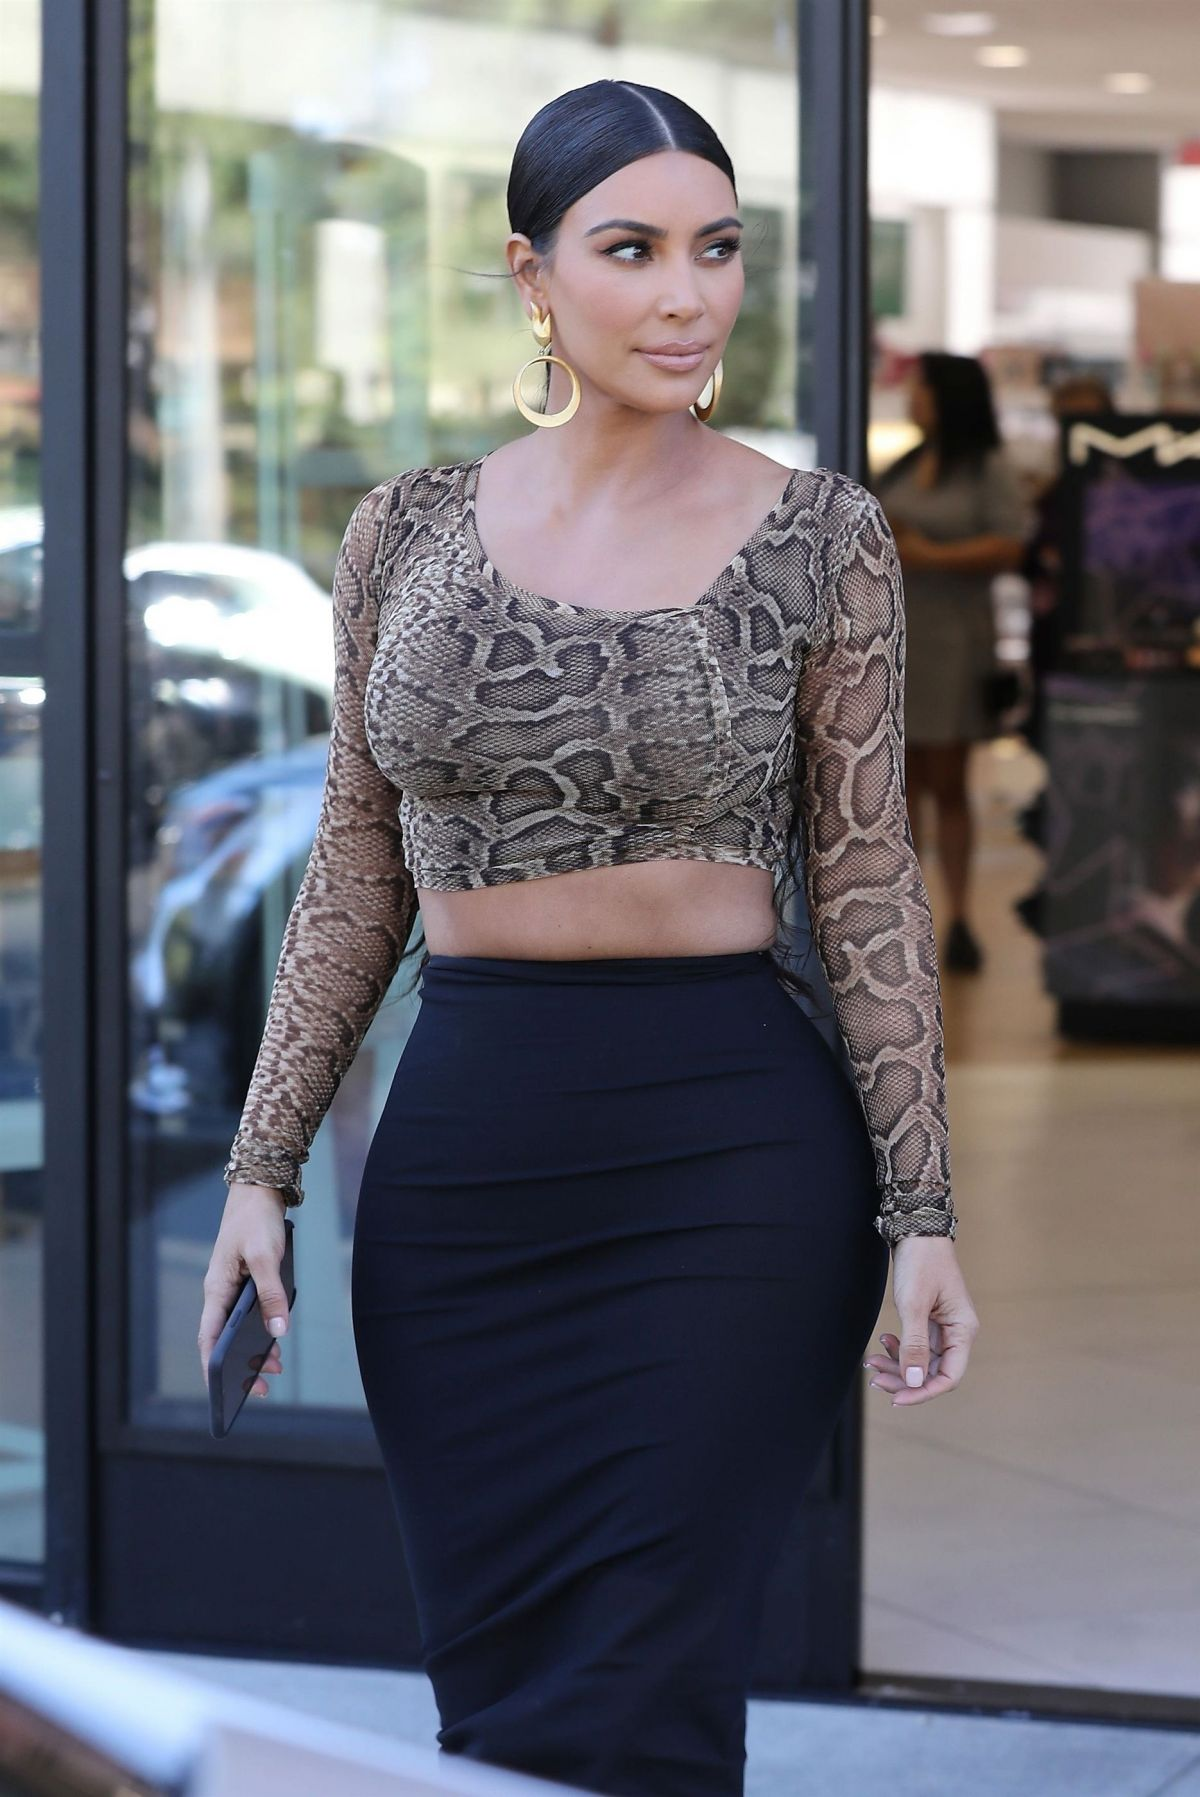 KIM KARDASHIAN at Ulta Beauty Cosmetics Store in Calabasas ...